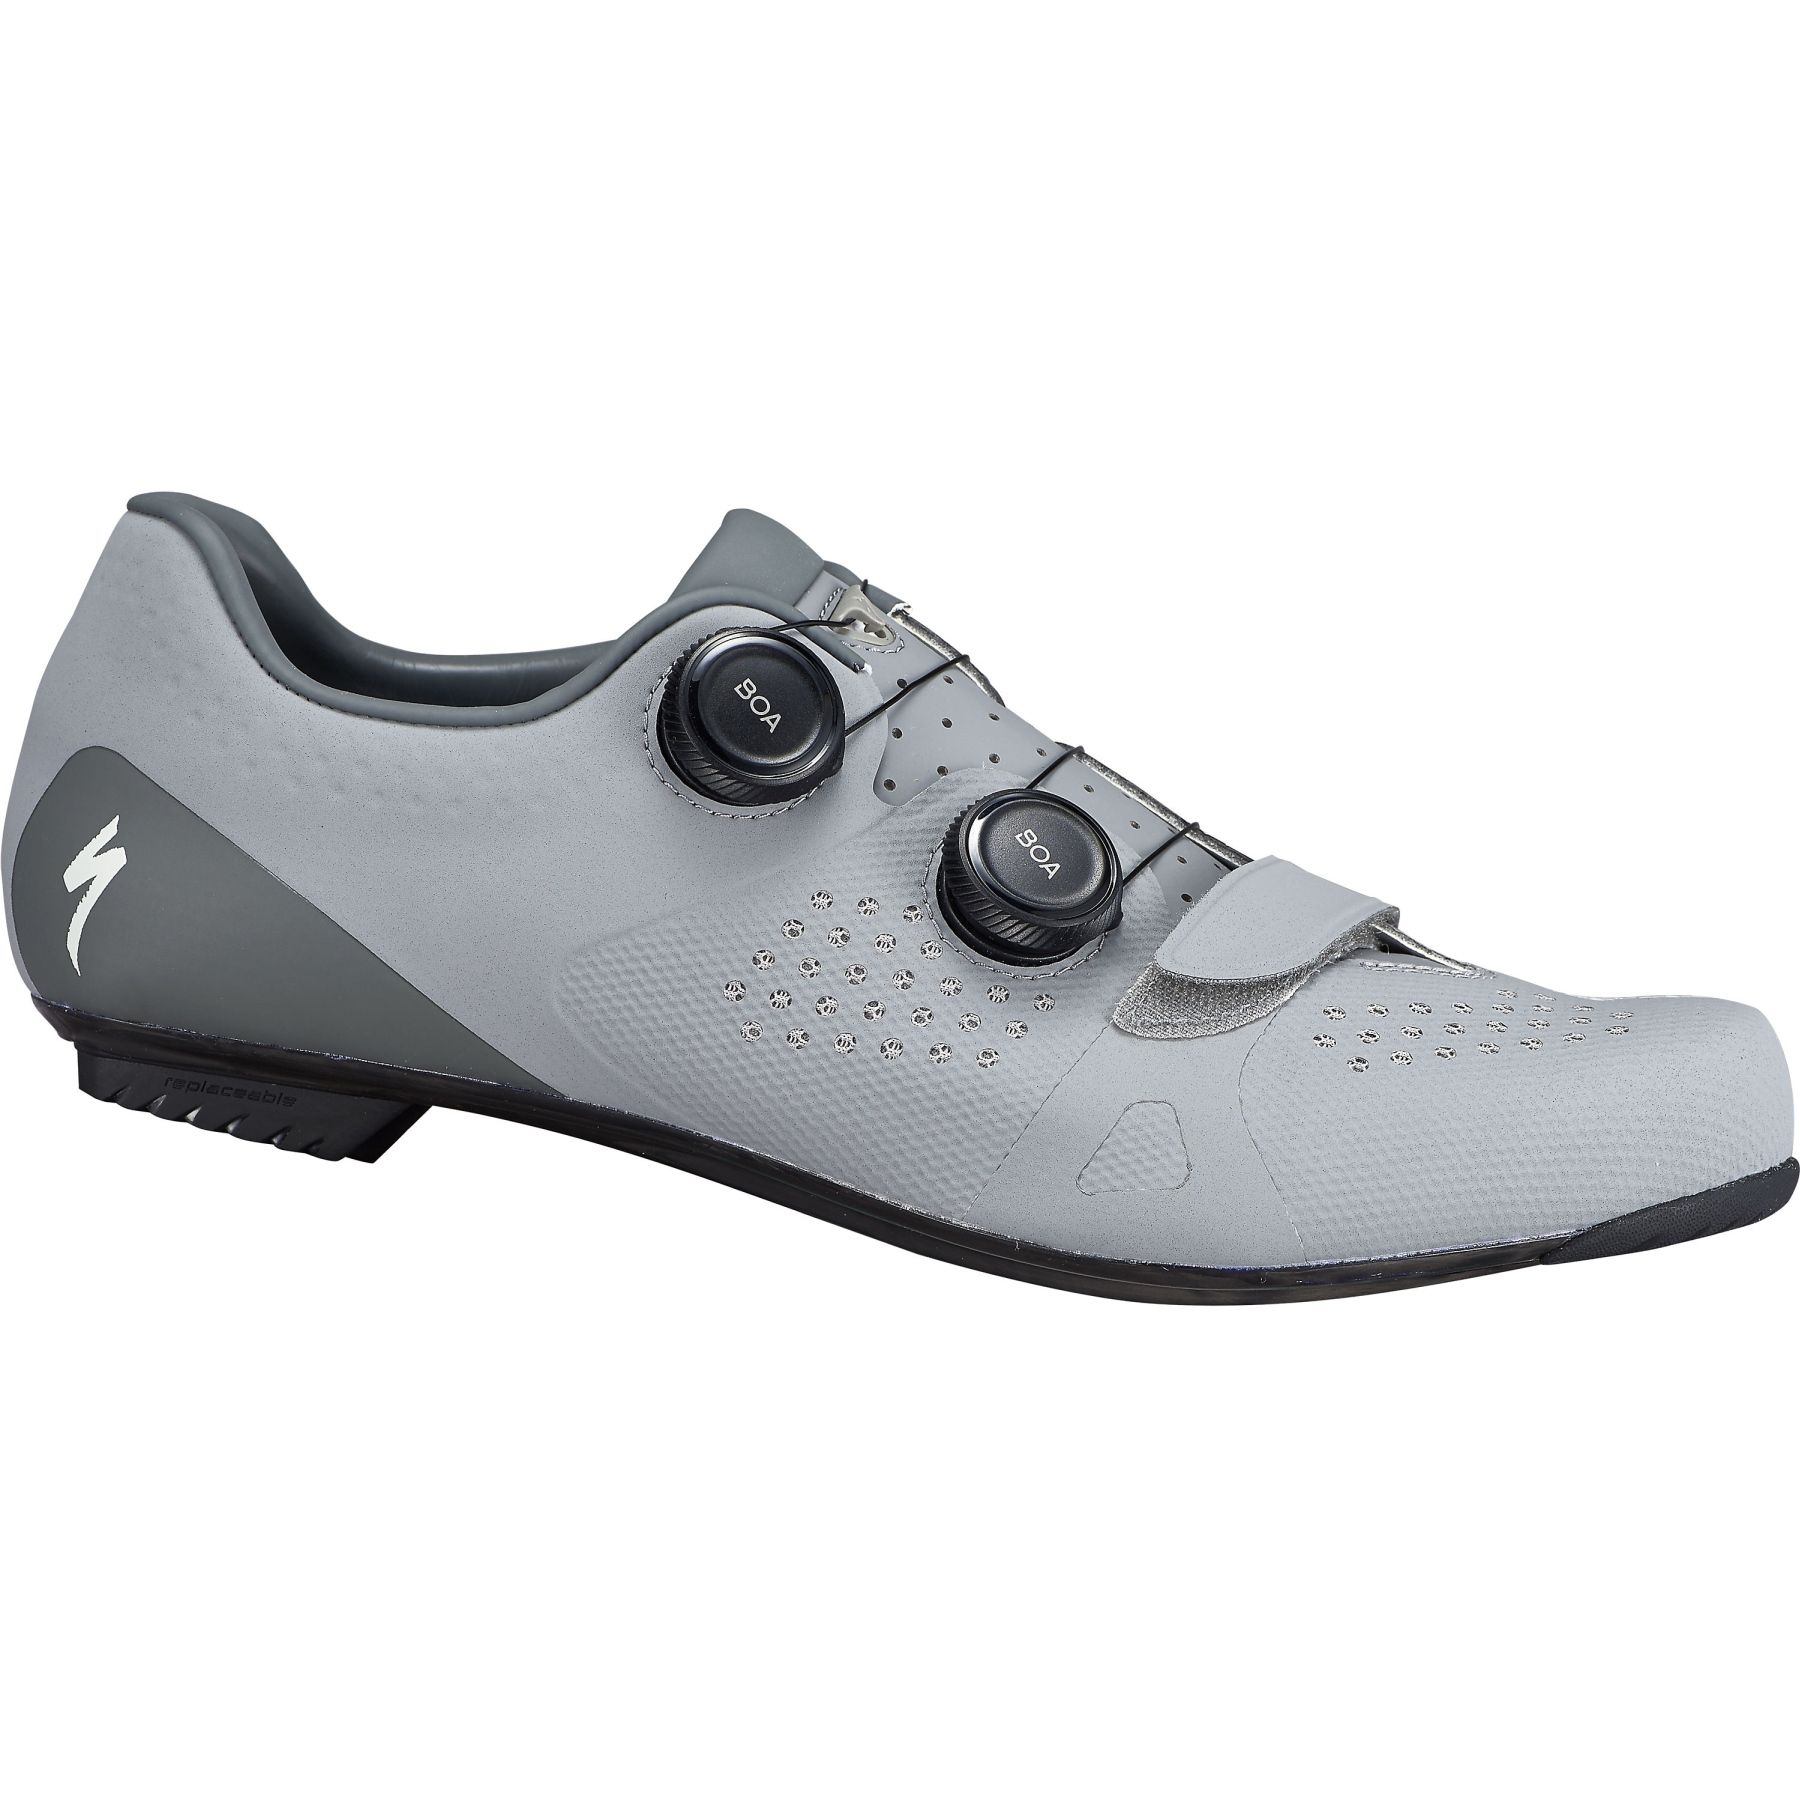 Specialized Torch 3.0 Road Schuh - Cool Grey/Slate